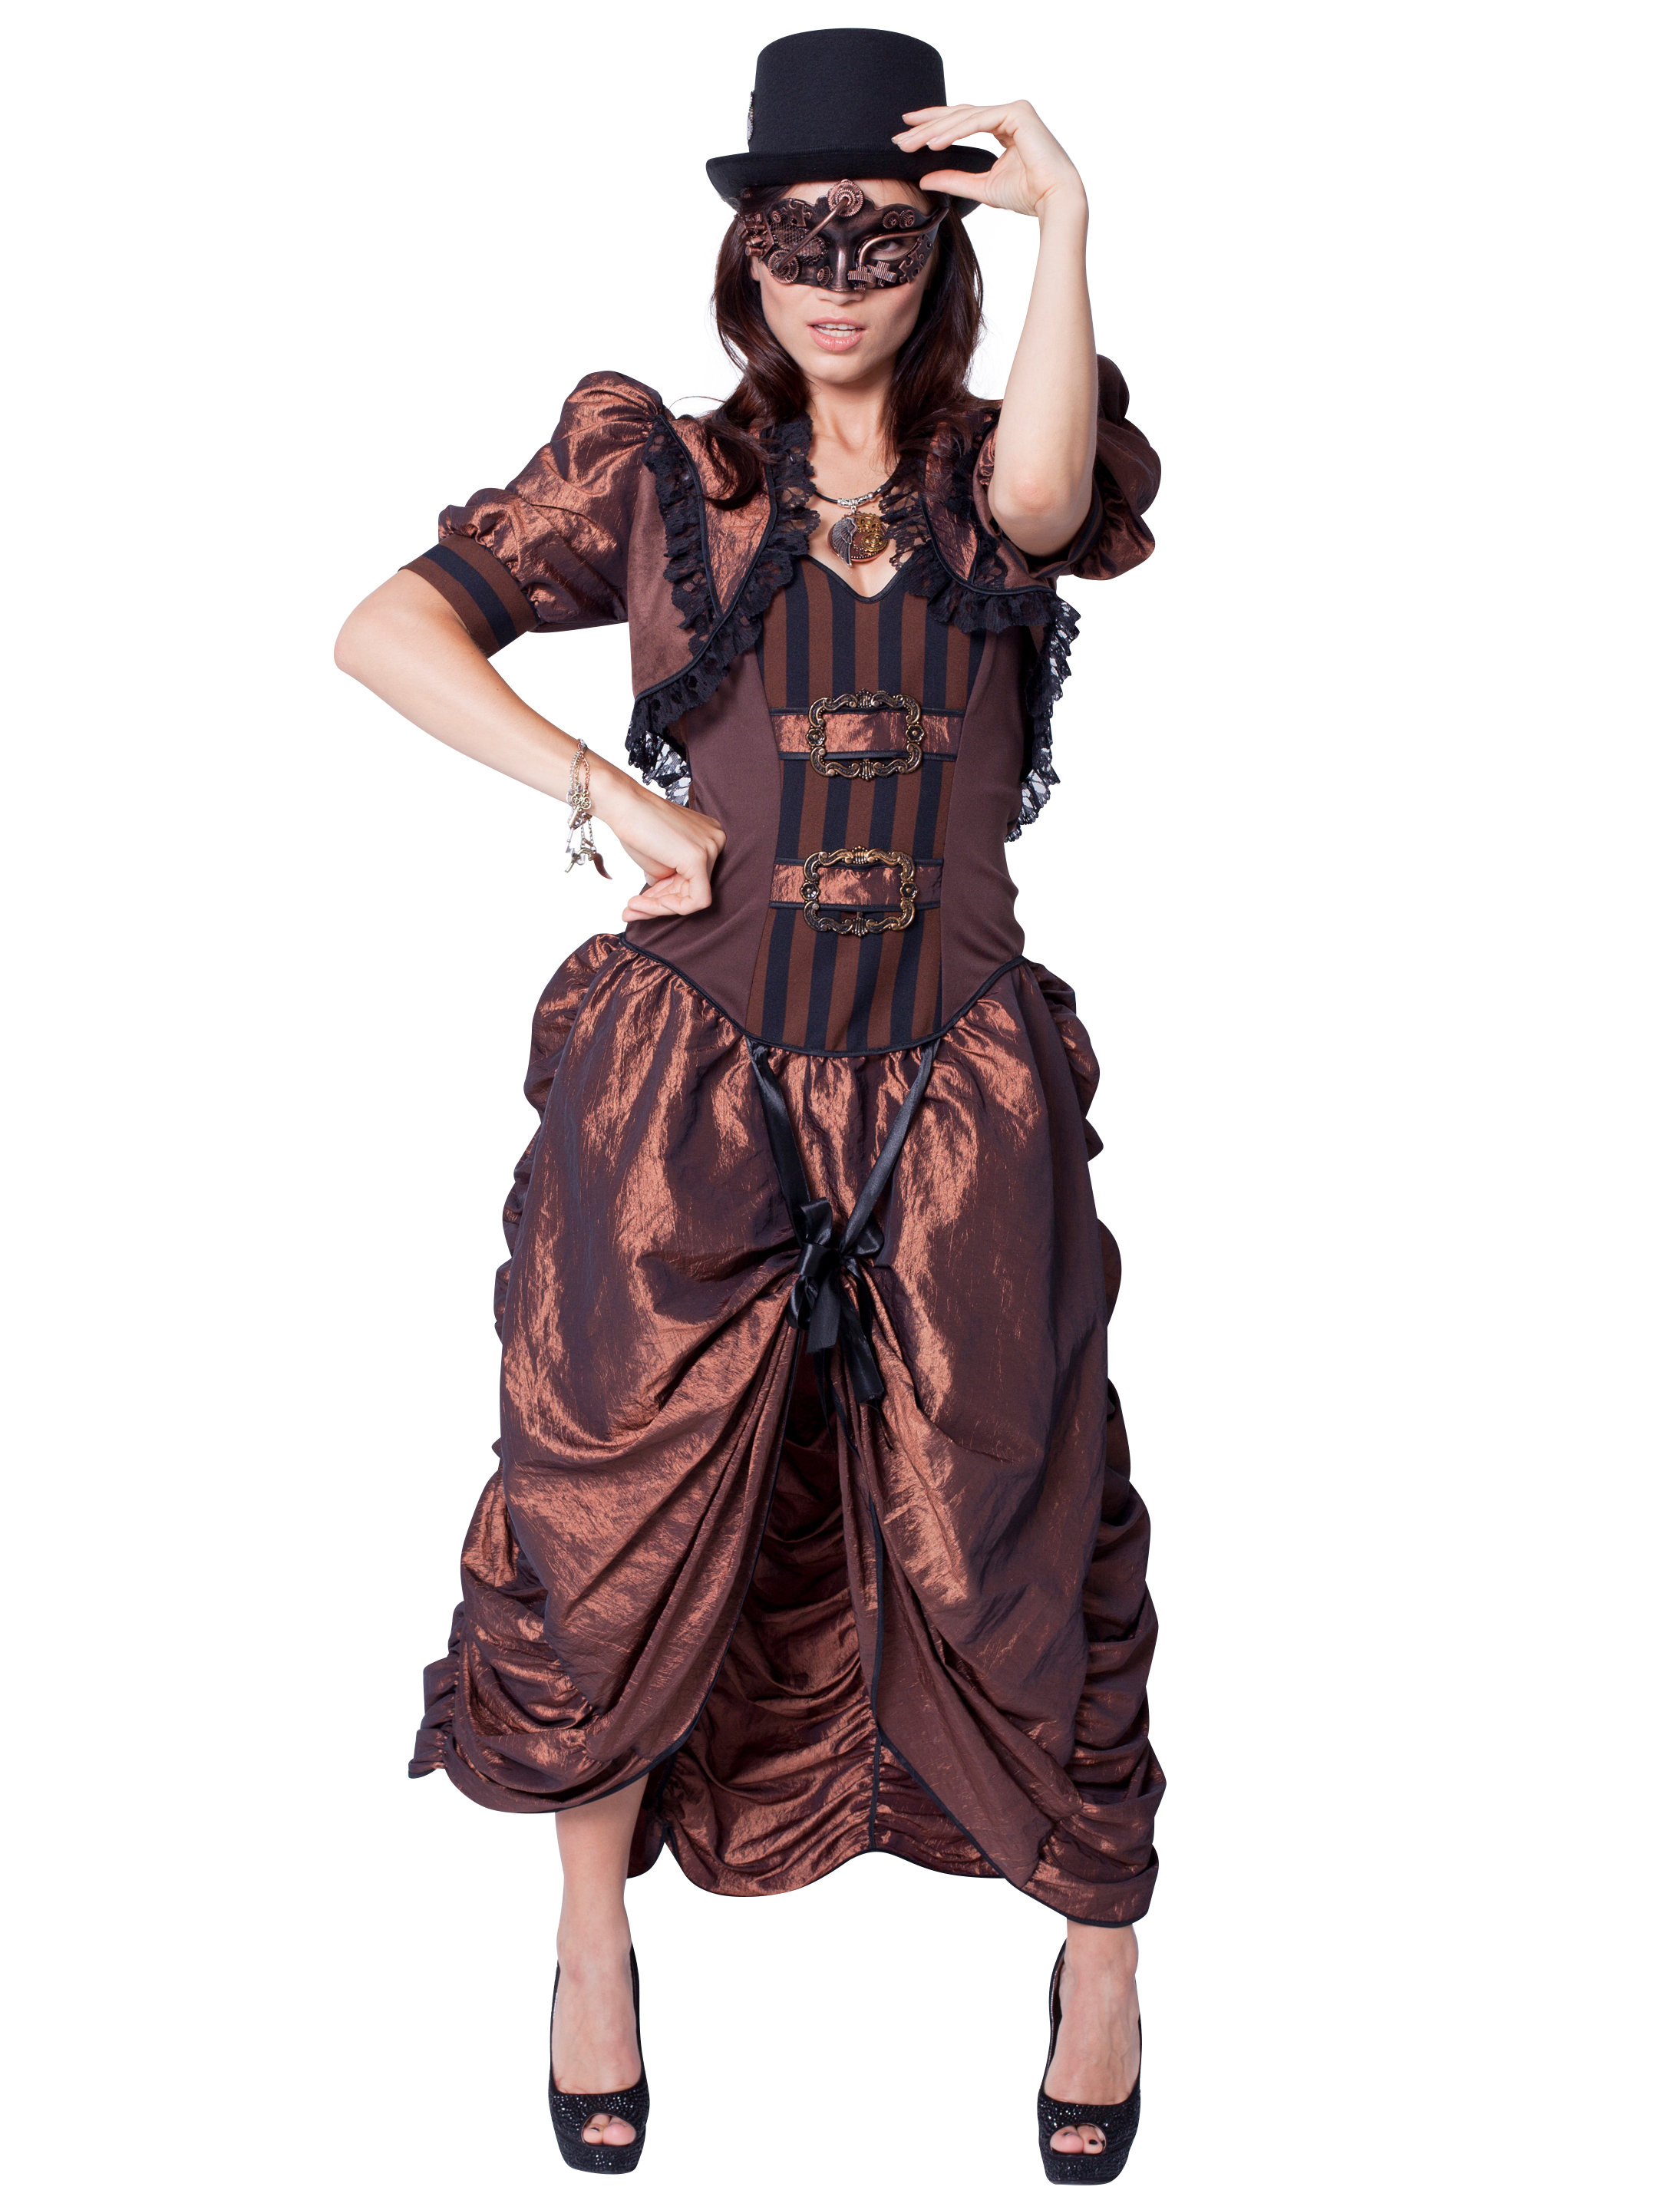 Damen-Kostuem Steampunkkleid Grosse: 40